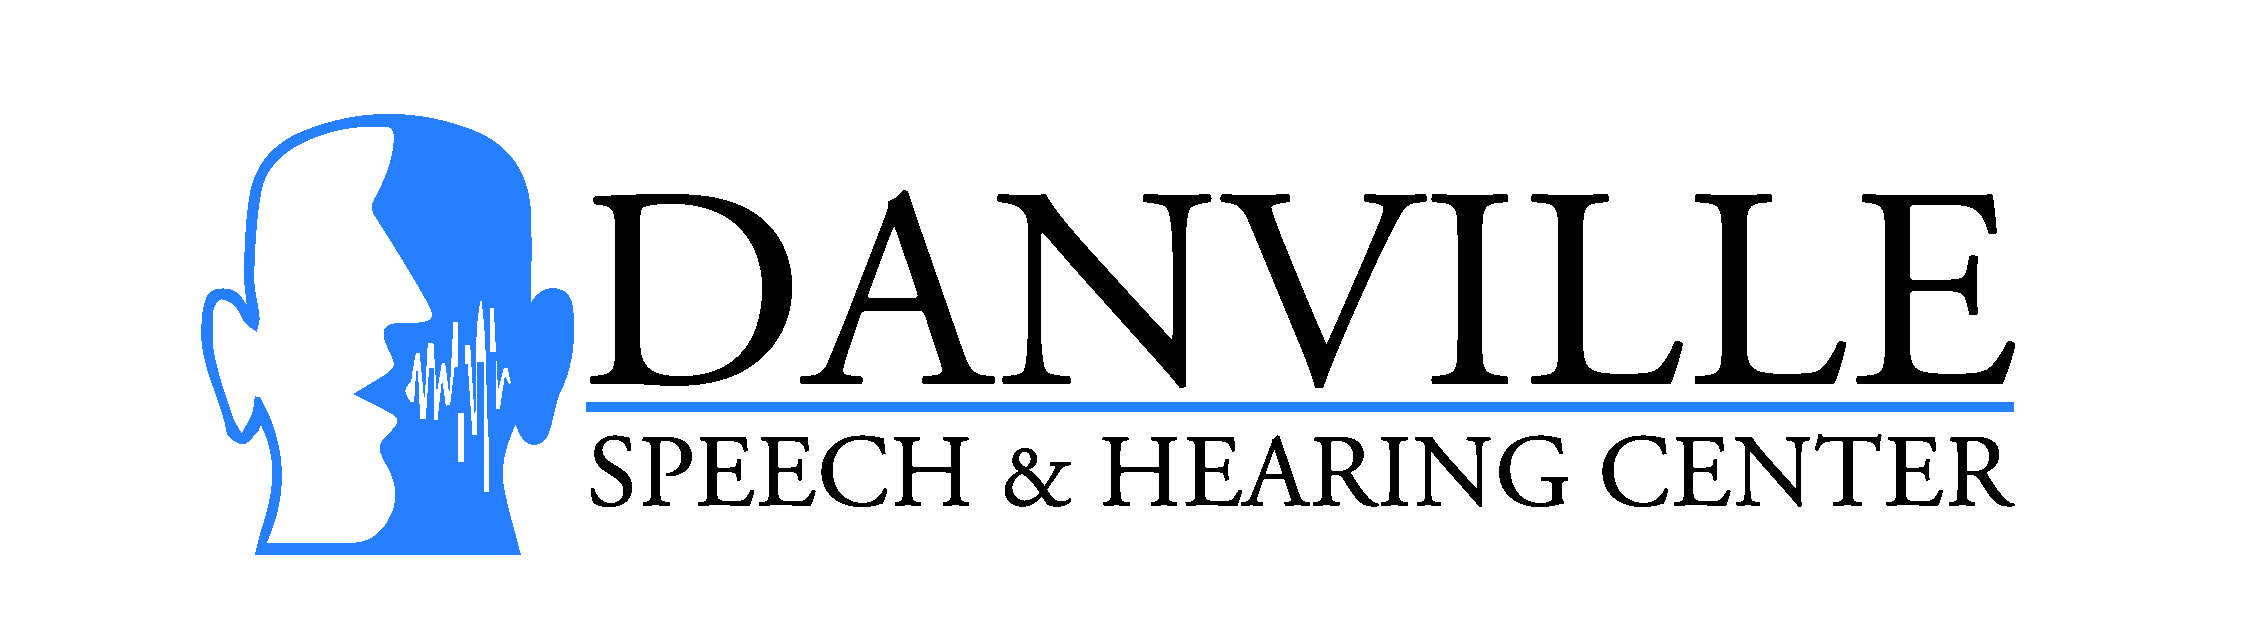 Danville Speech & Hearing Center